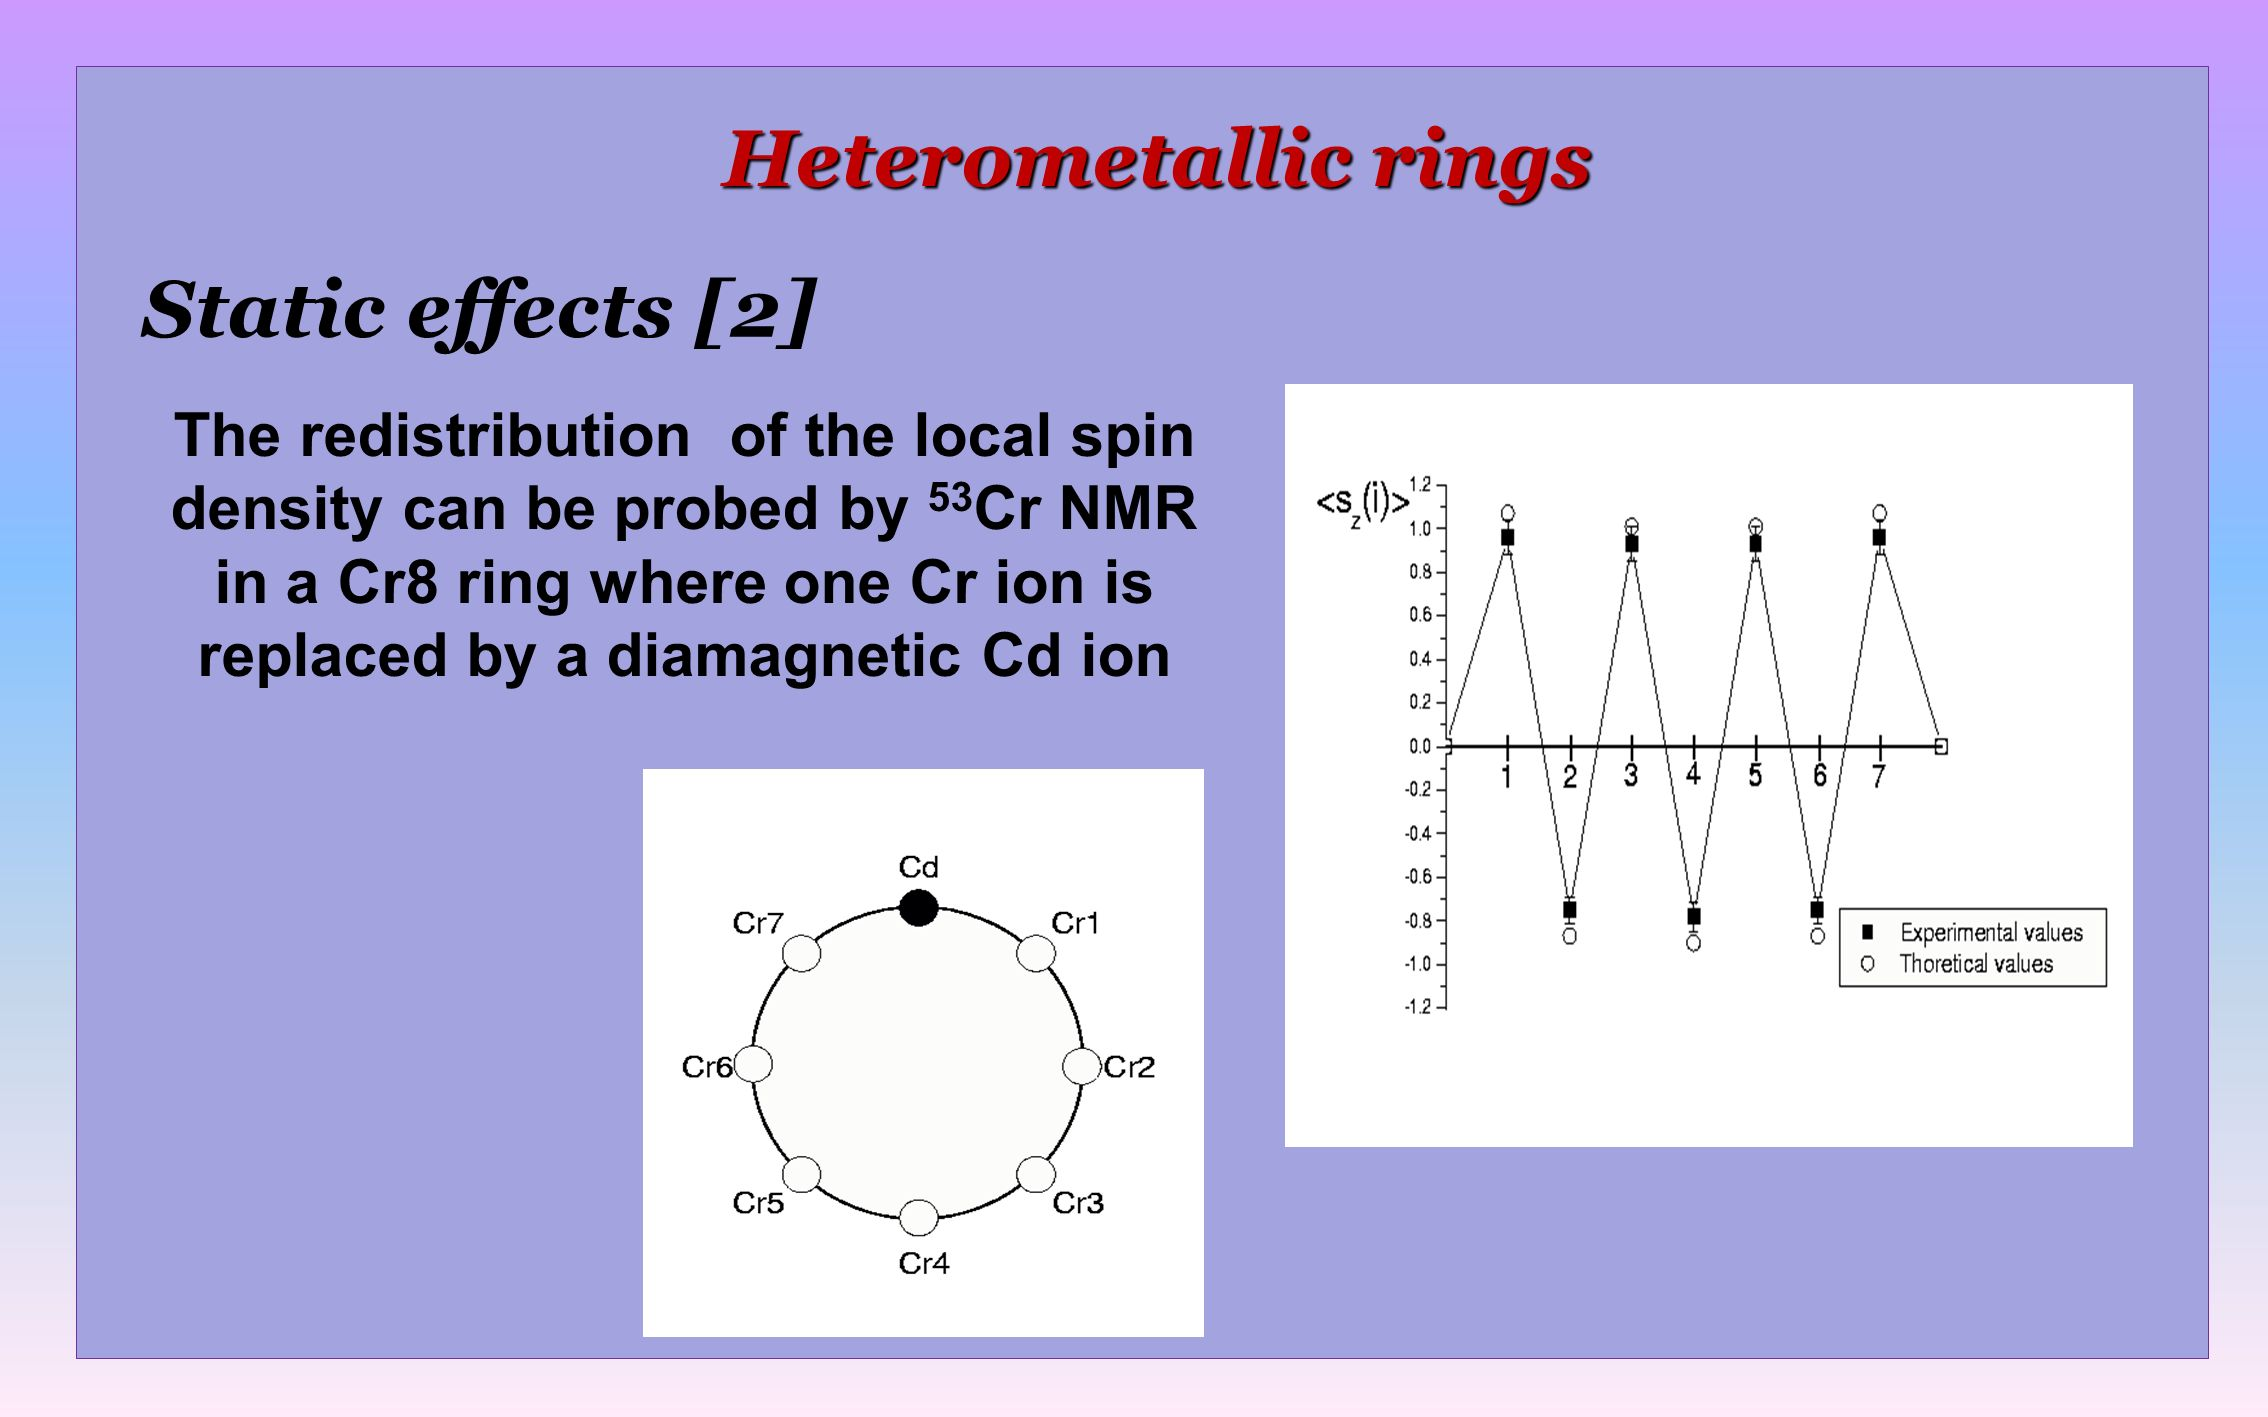 Heterometallic rings Dynamic effects [3,4] The shift in the NMR relaxation rate between the Cr7Fe and Cr7Ni is related to the different perturbation effects of the Fe and Ni ions on the spin dynamics